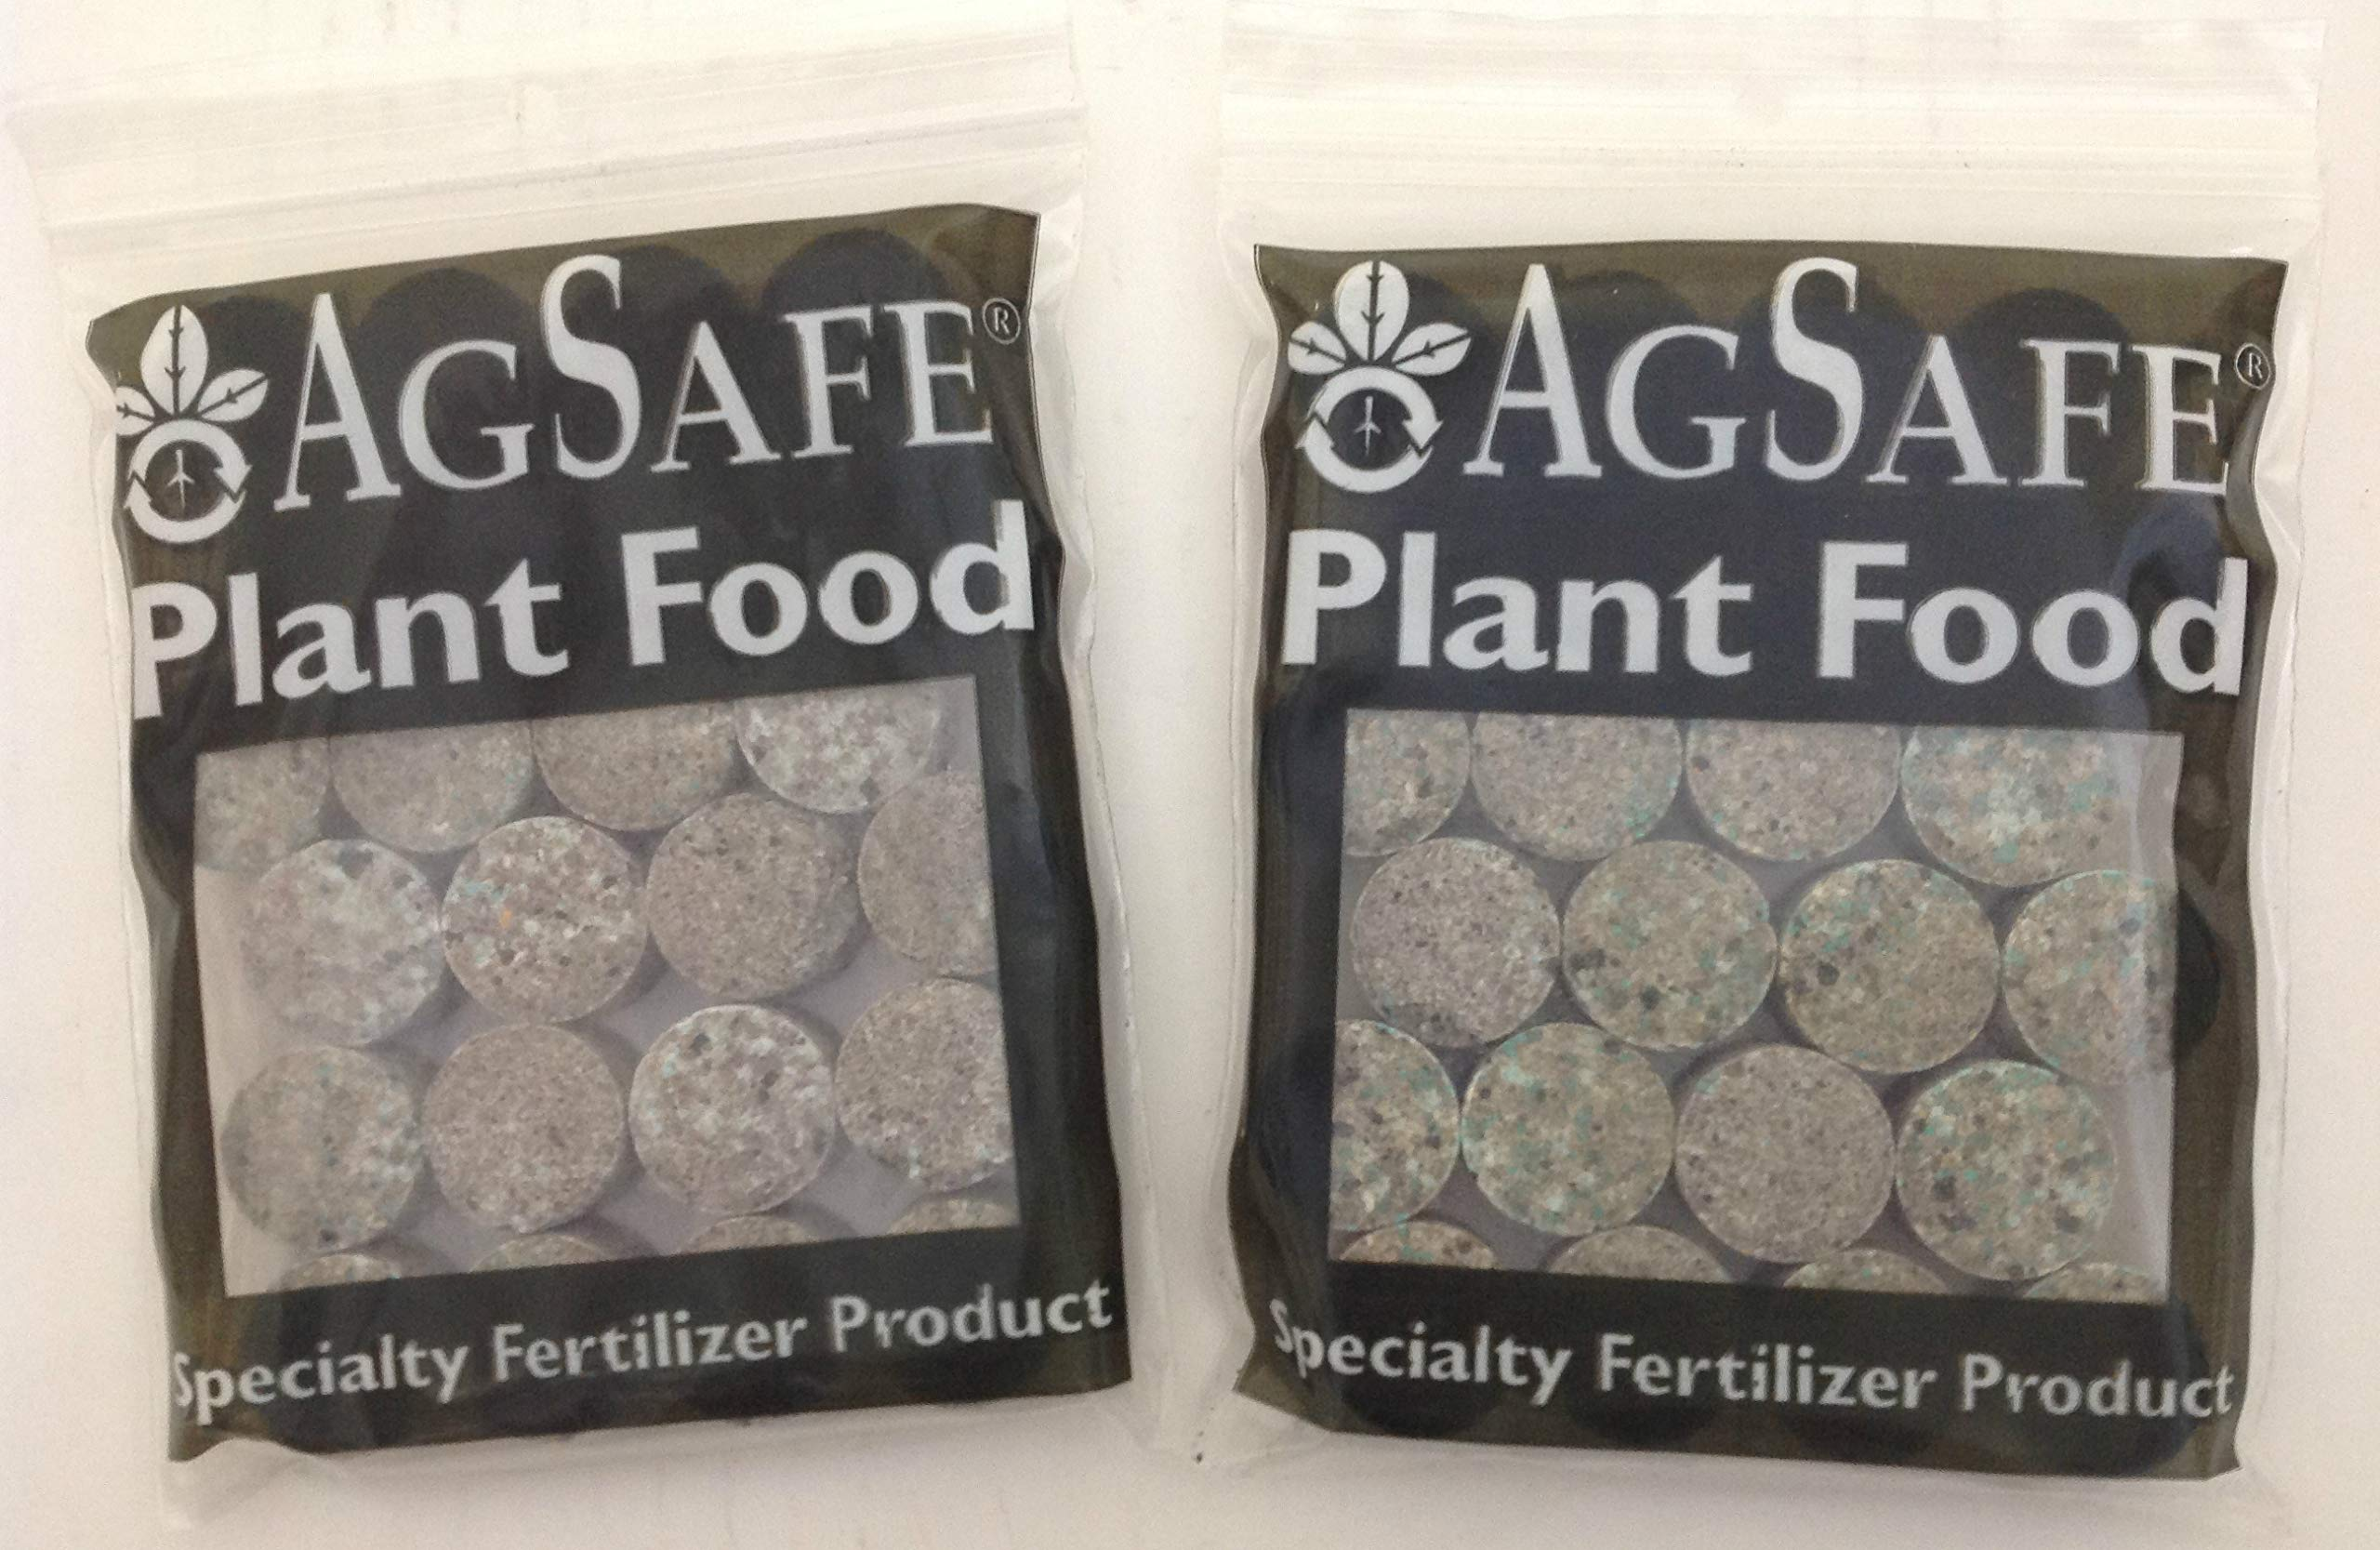 Custom Pro AgSafe Aquatic Fertilizer Tablets for Pond & Water Garden Plants Promote Plant Health, Flowering and Growth (2 Pack/48 Tablets)